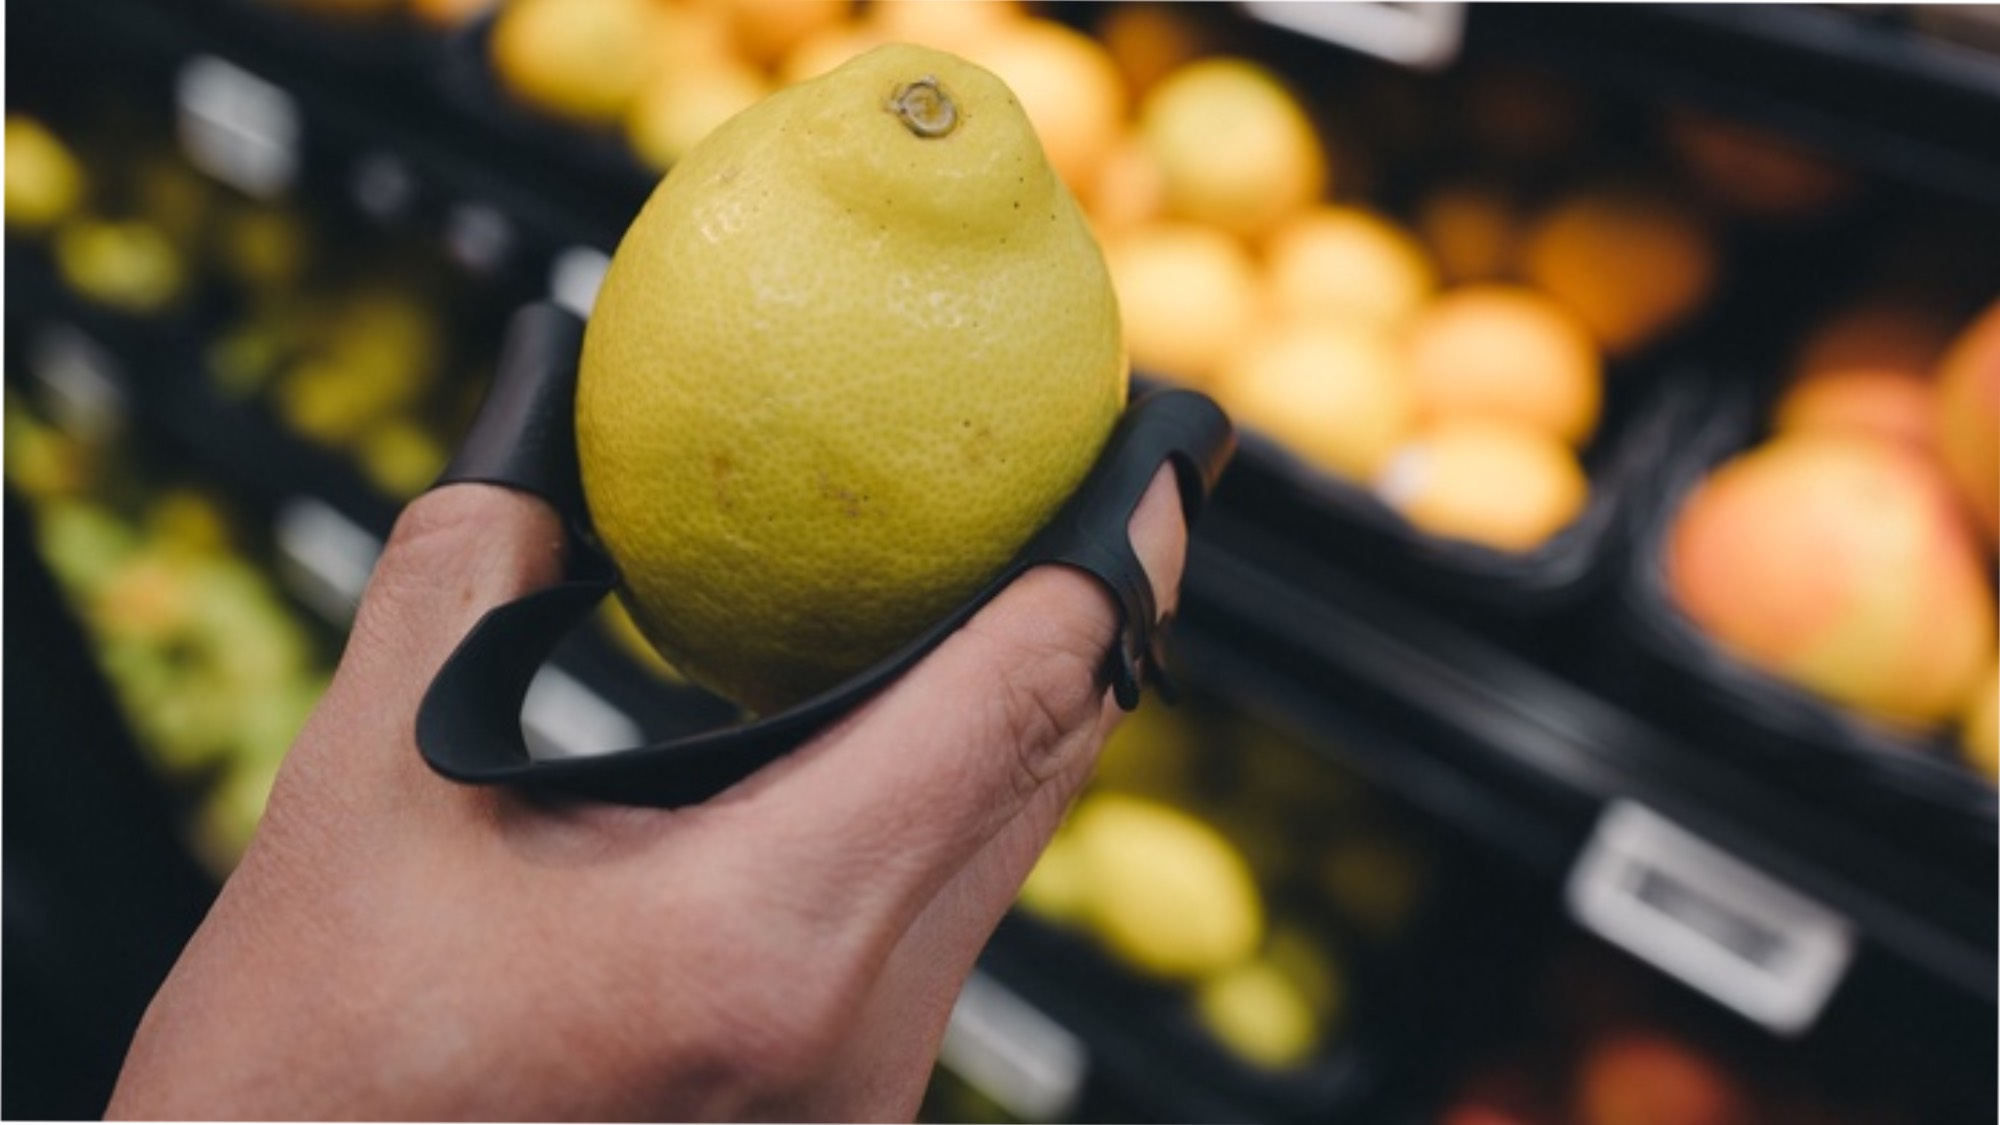 The Koura protective glovel holding a lemon in a shop